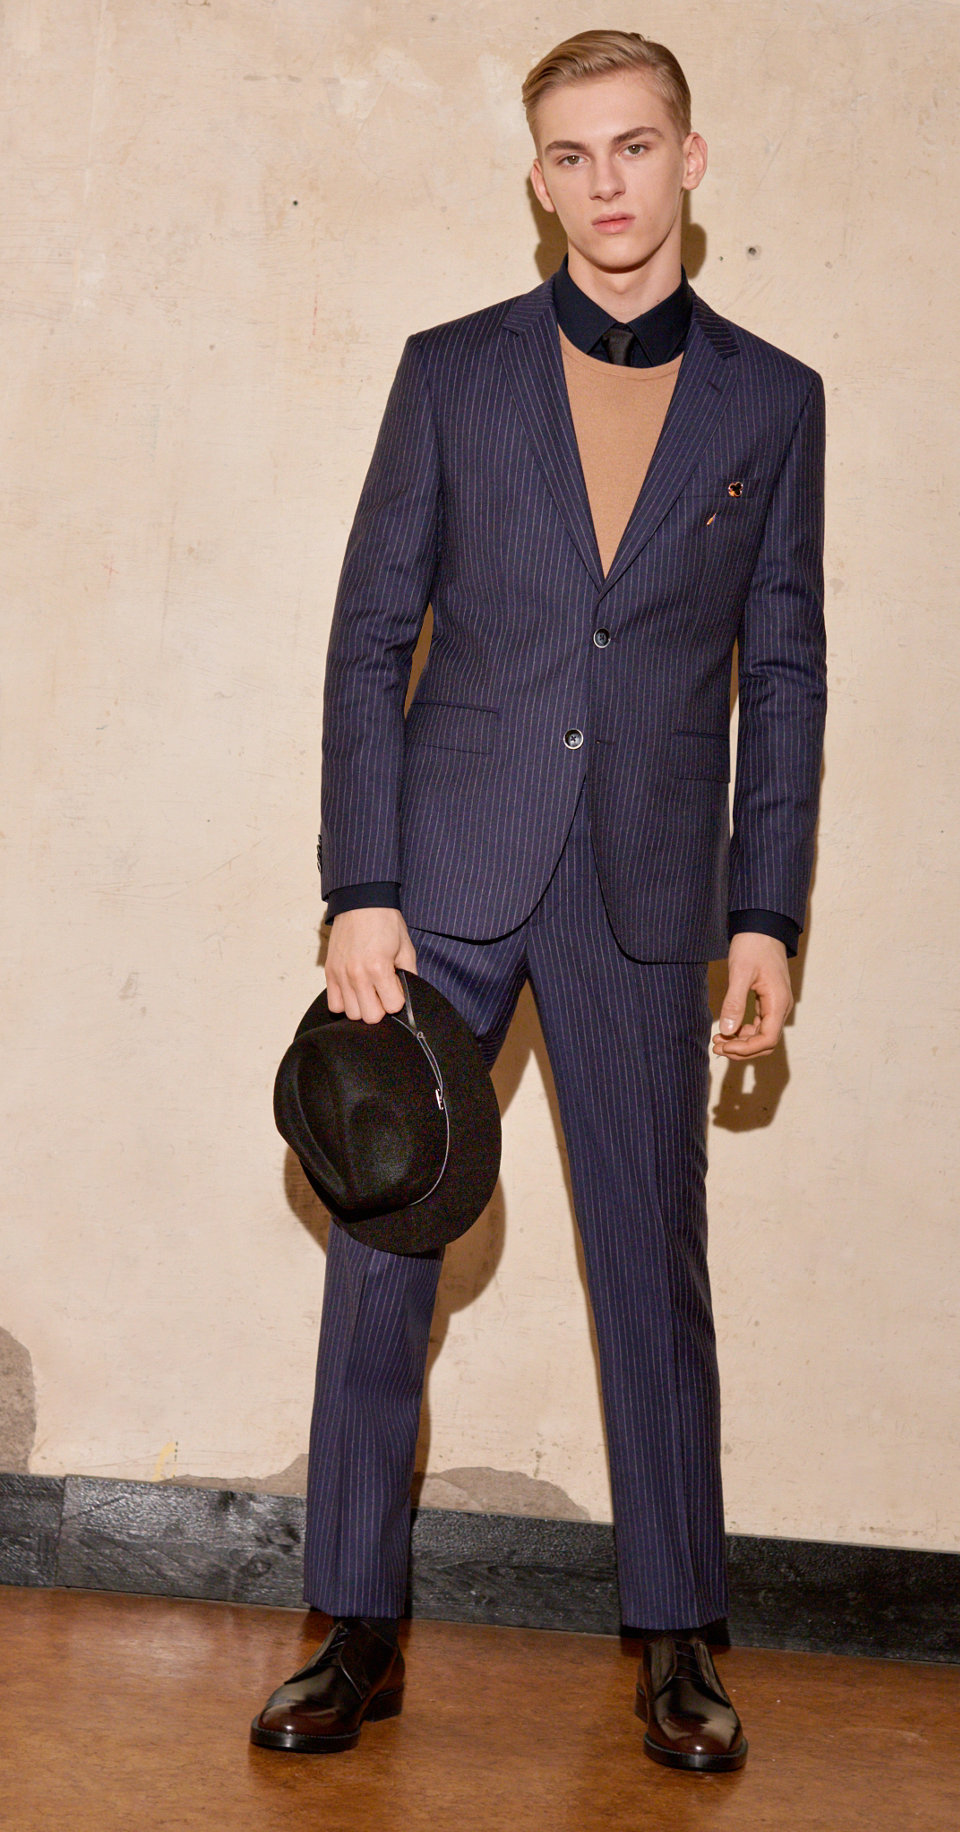 Blue suit, black neckwear, and hat by HUGO